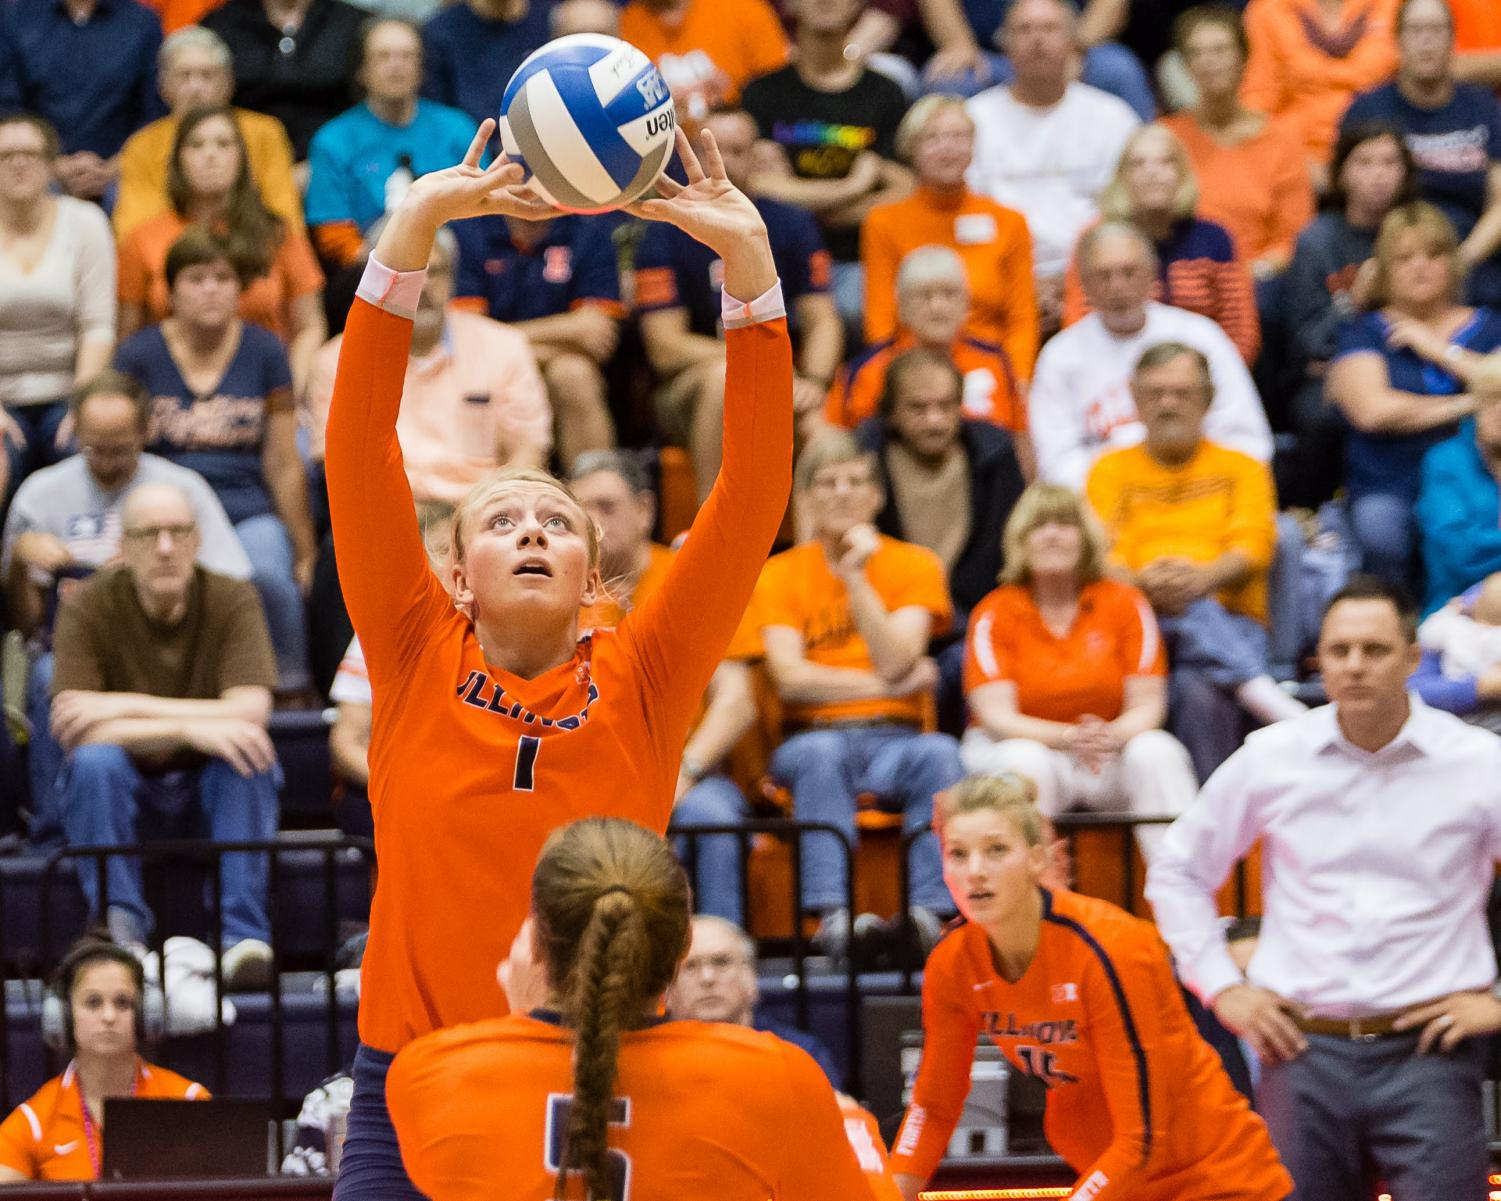 Illinois setter Jordyn Poulter (1) sets the ball during the match against Iowa at Huff Hall on Sept. 28. The Illini won 3-0.